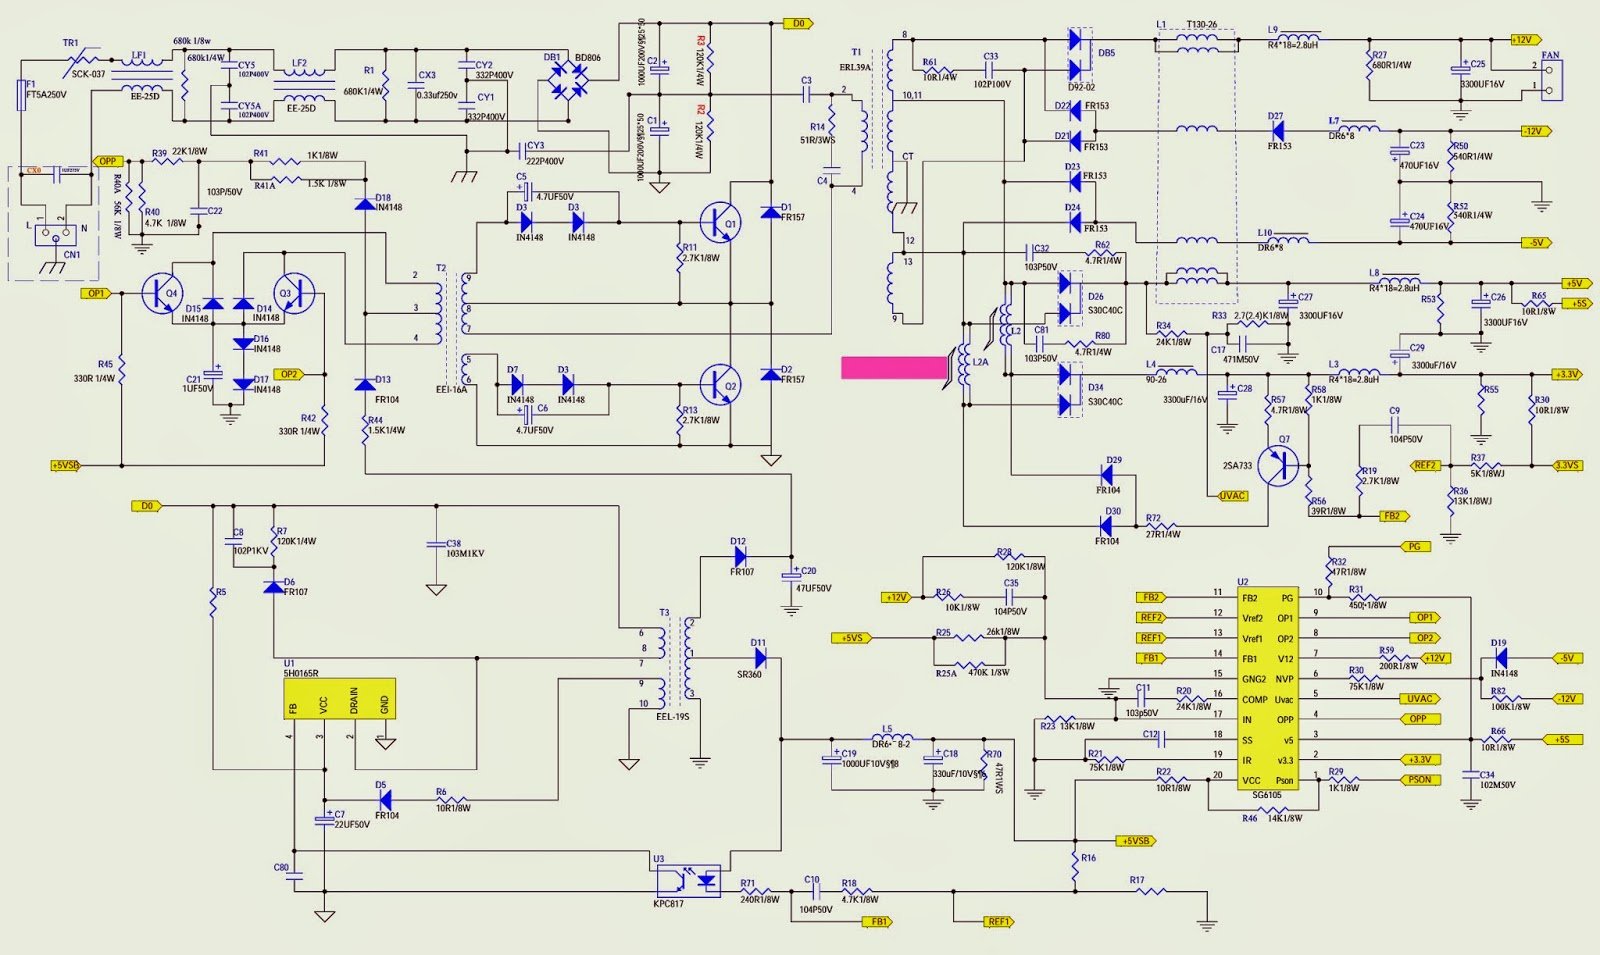 Atx500t Atx600t Schematic Computer Power Supply Electro Help The Circuit Diagram Of 4w Fluorescent Lamp